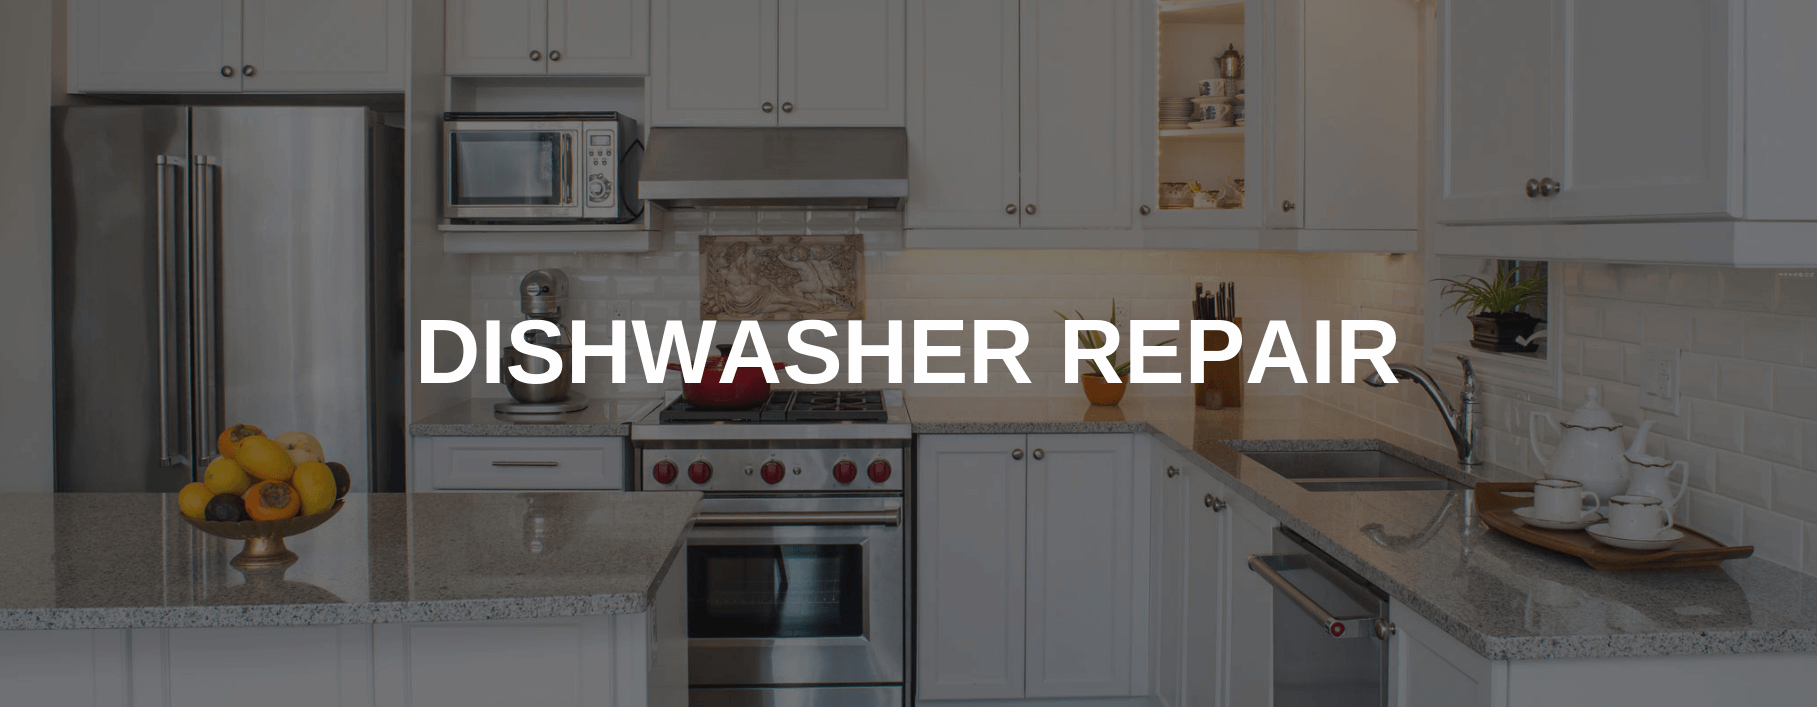 dishwasher repair yucaipa